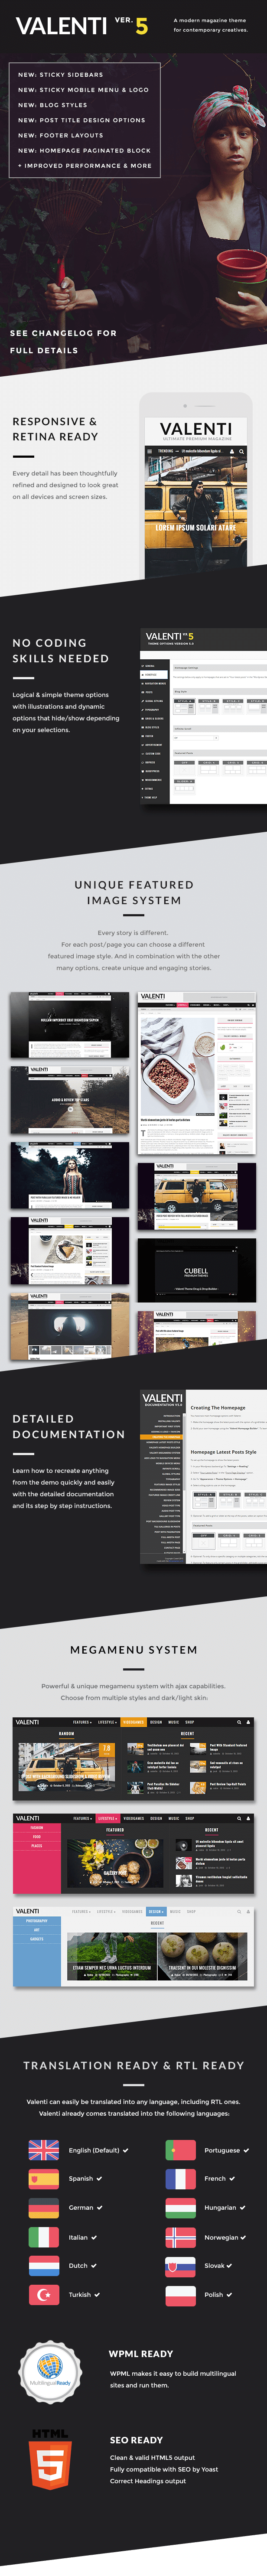 Valenti   WordPress HD Review Magazine News Theme   Wordpress     Logos